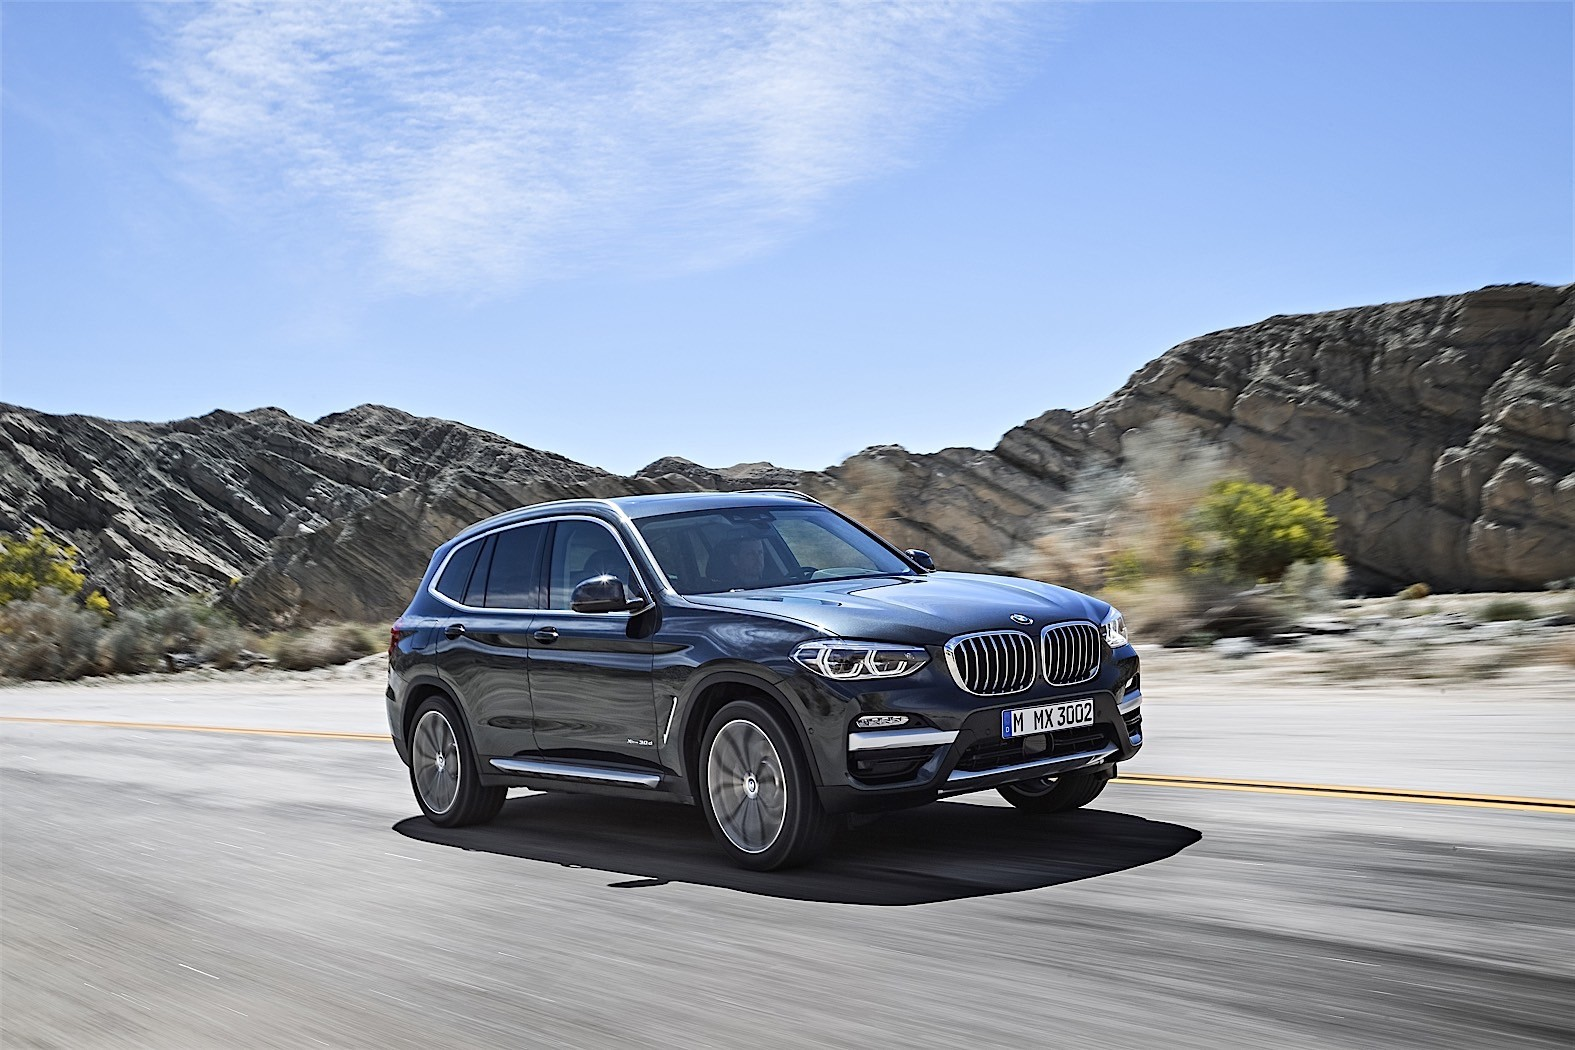 2018 bmw x3 g01 goes official transitions from sav to suv. Black Bedroom Furniture Sets. Home Design Ideas